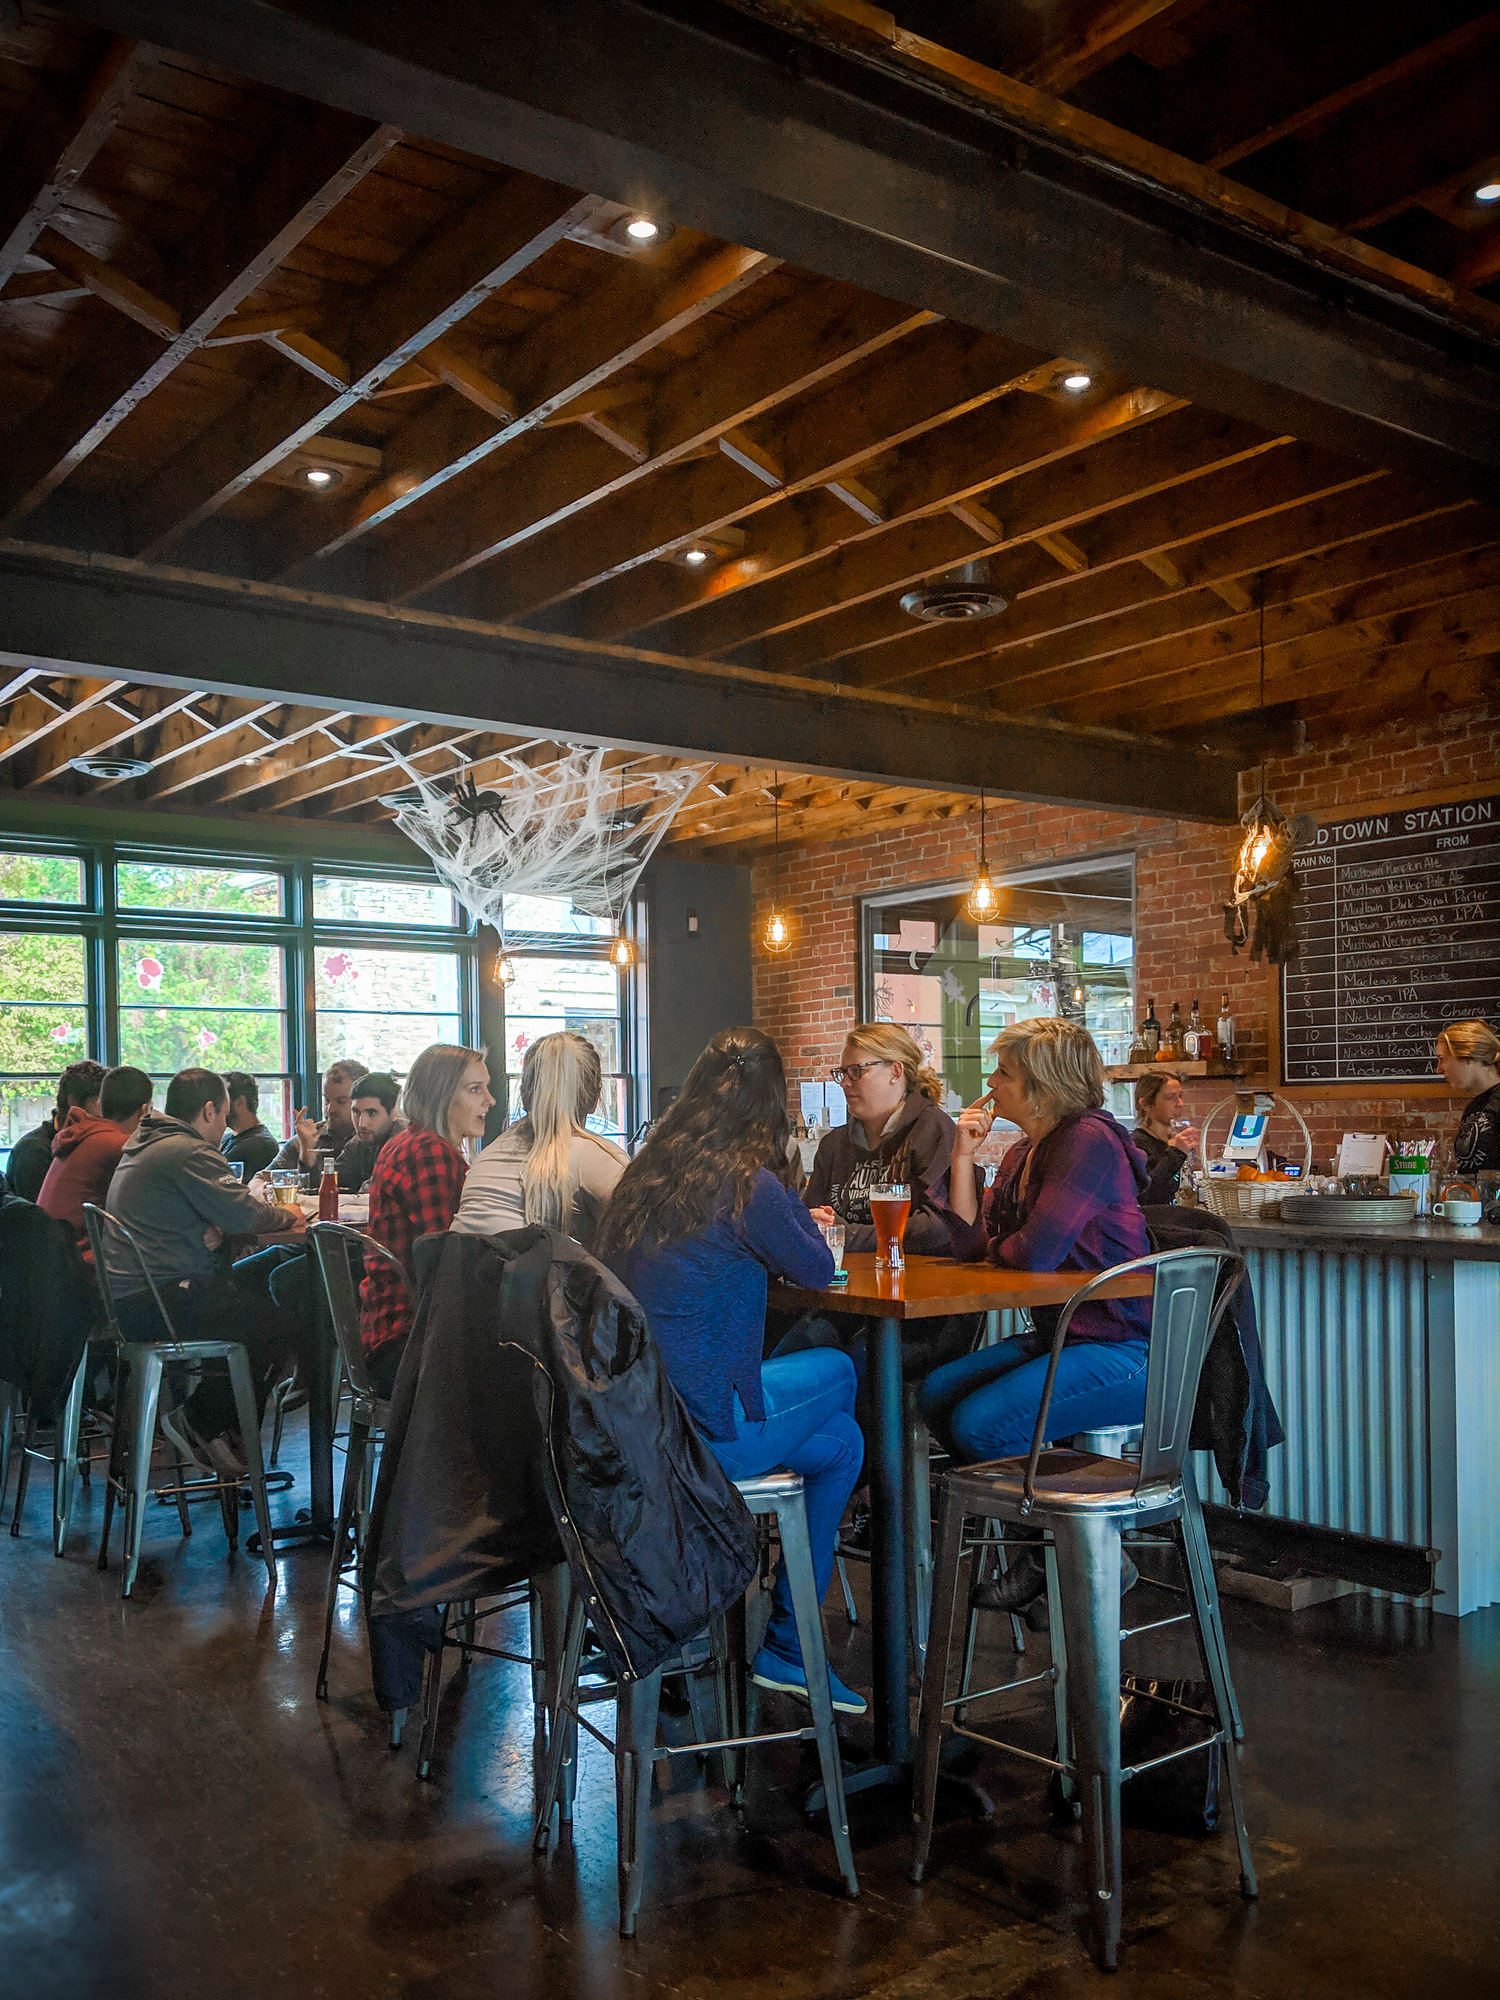 Mudtown Station is a brewery on the Grey County Saints and Sinners Trail.